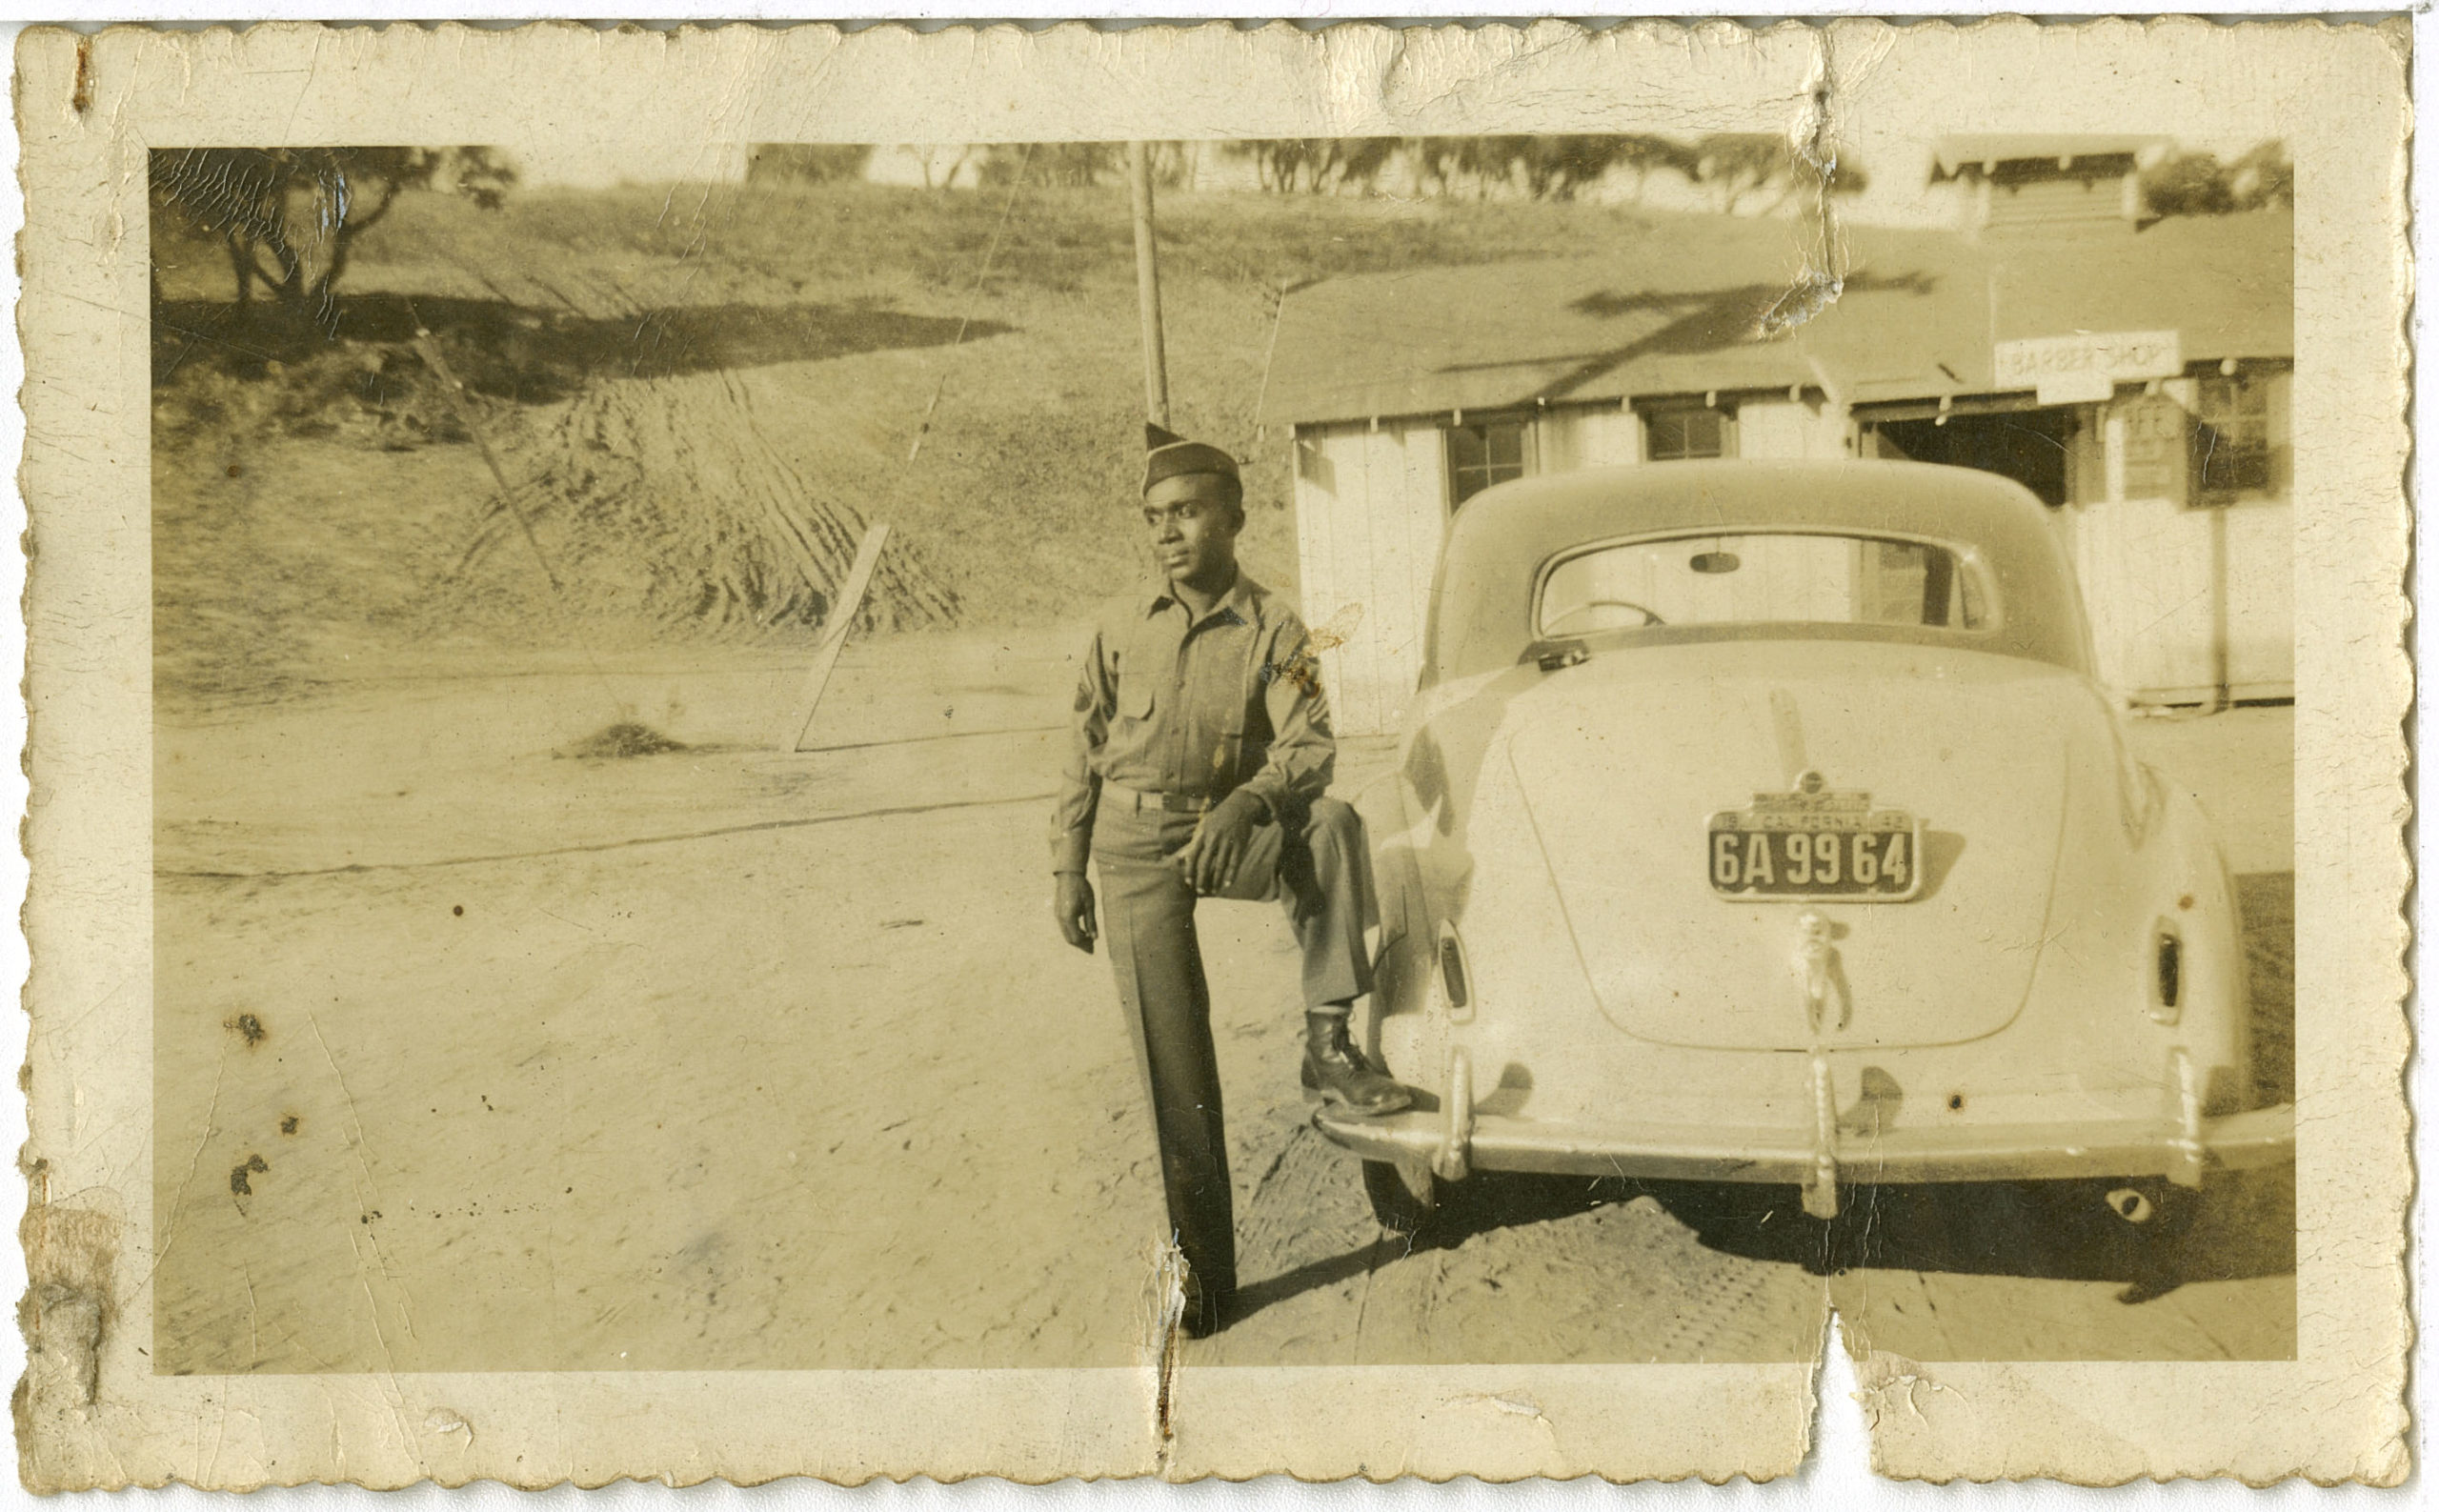 Photograph of soldier against a car, undatedAsh Family Photographs